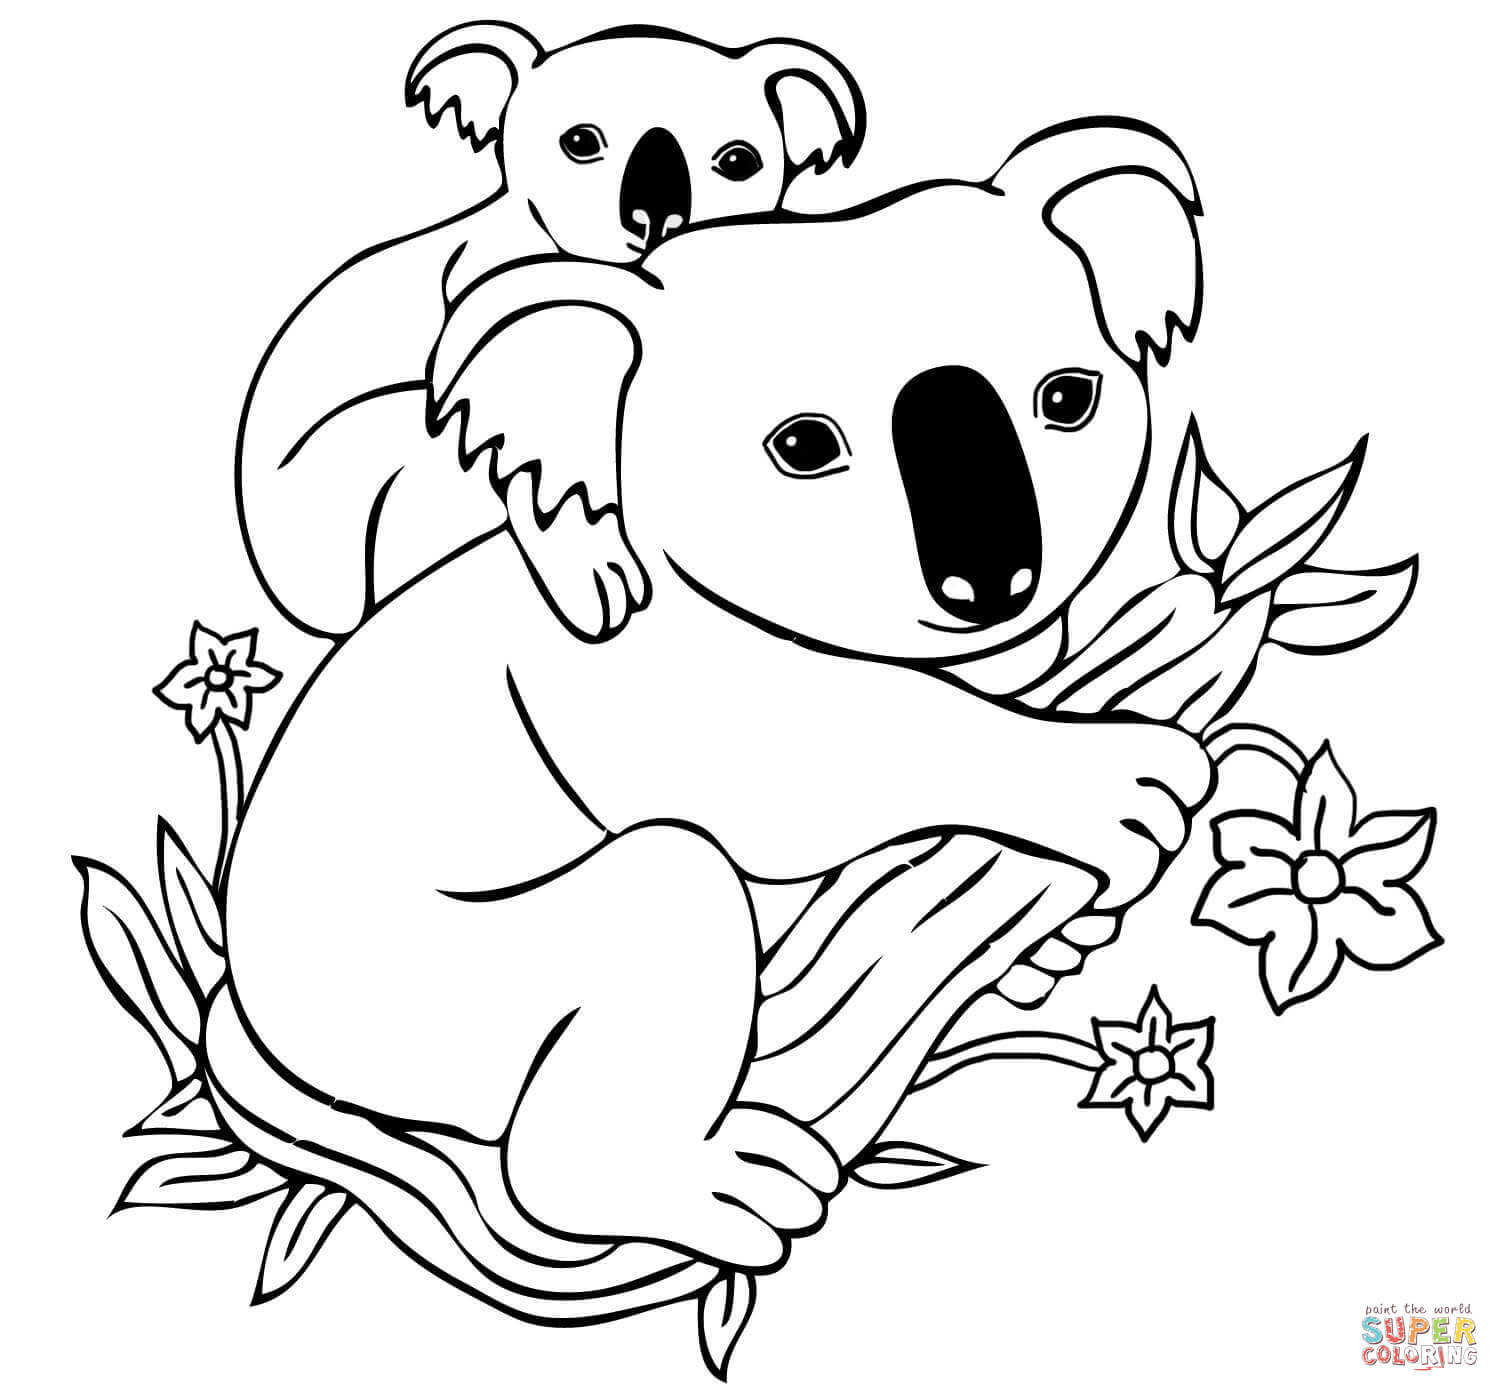 koala coloring pages to download and print for free